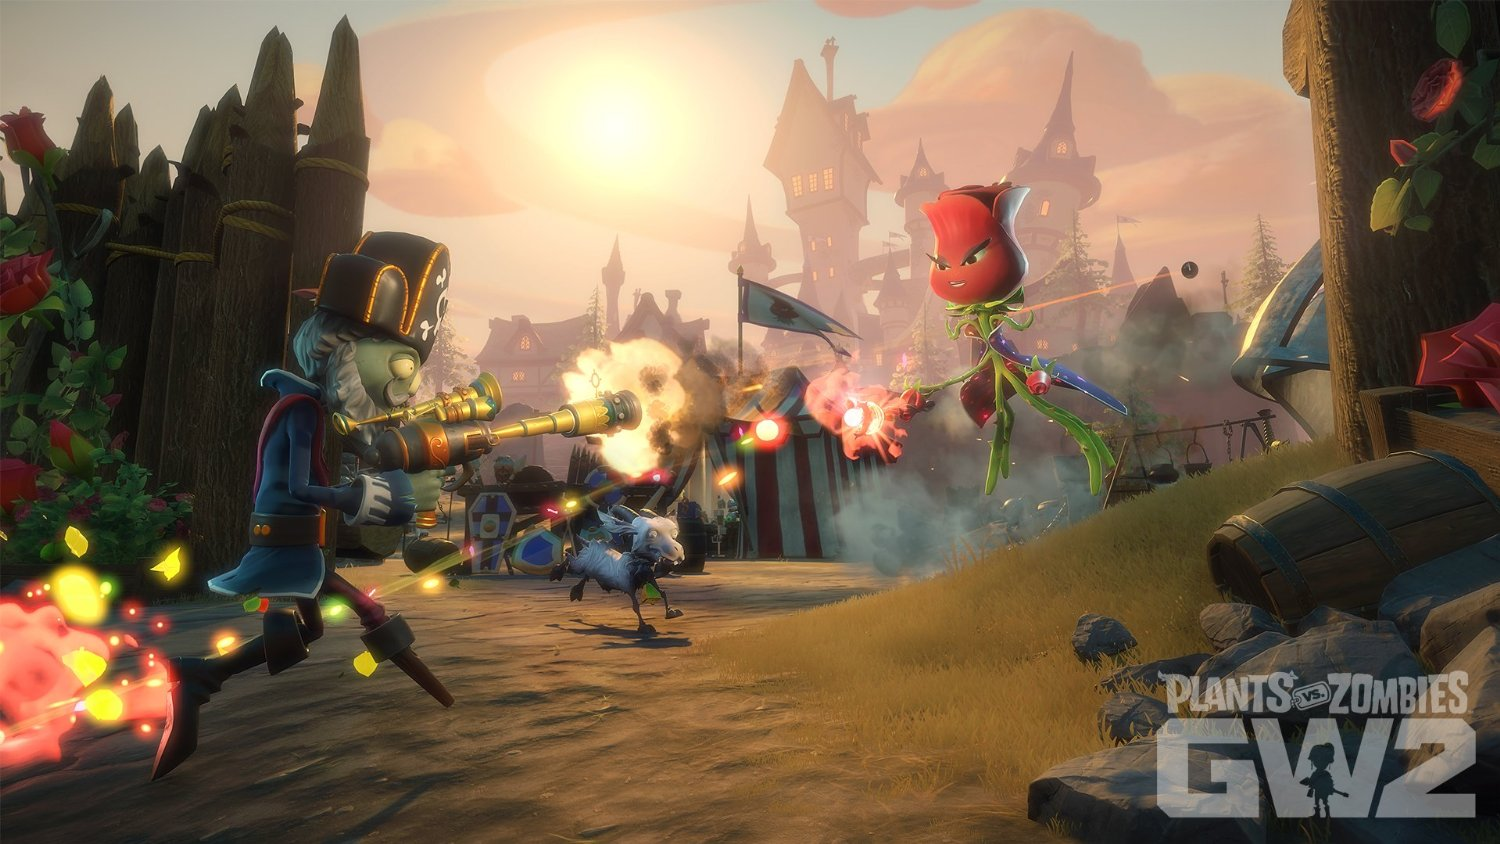 Plants Vs Zombies Garden Warfare 2 2 The Koalition